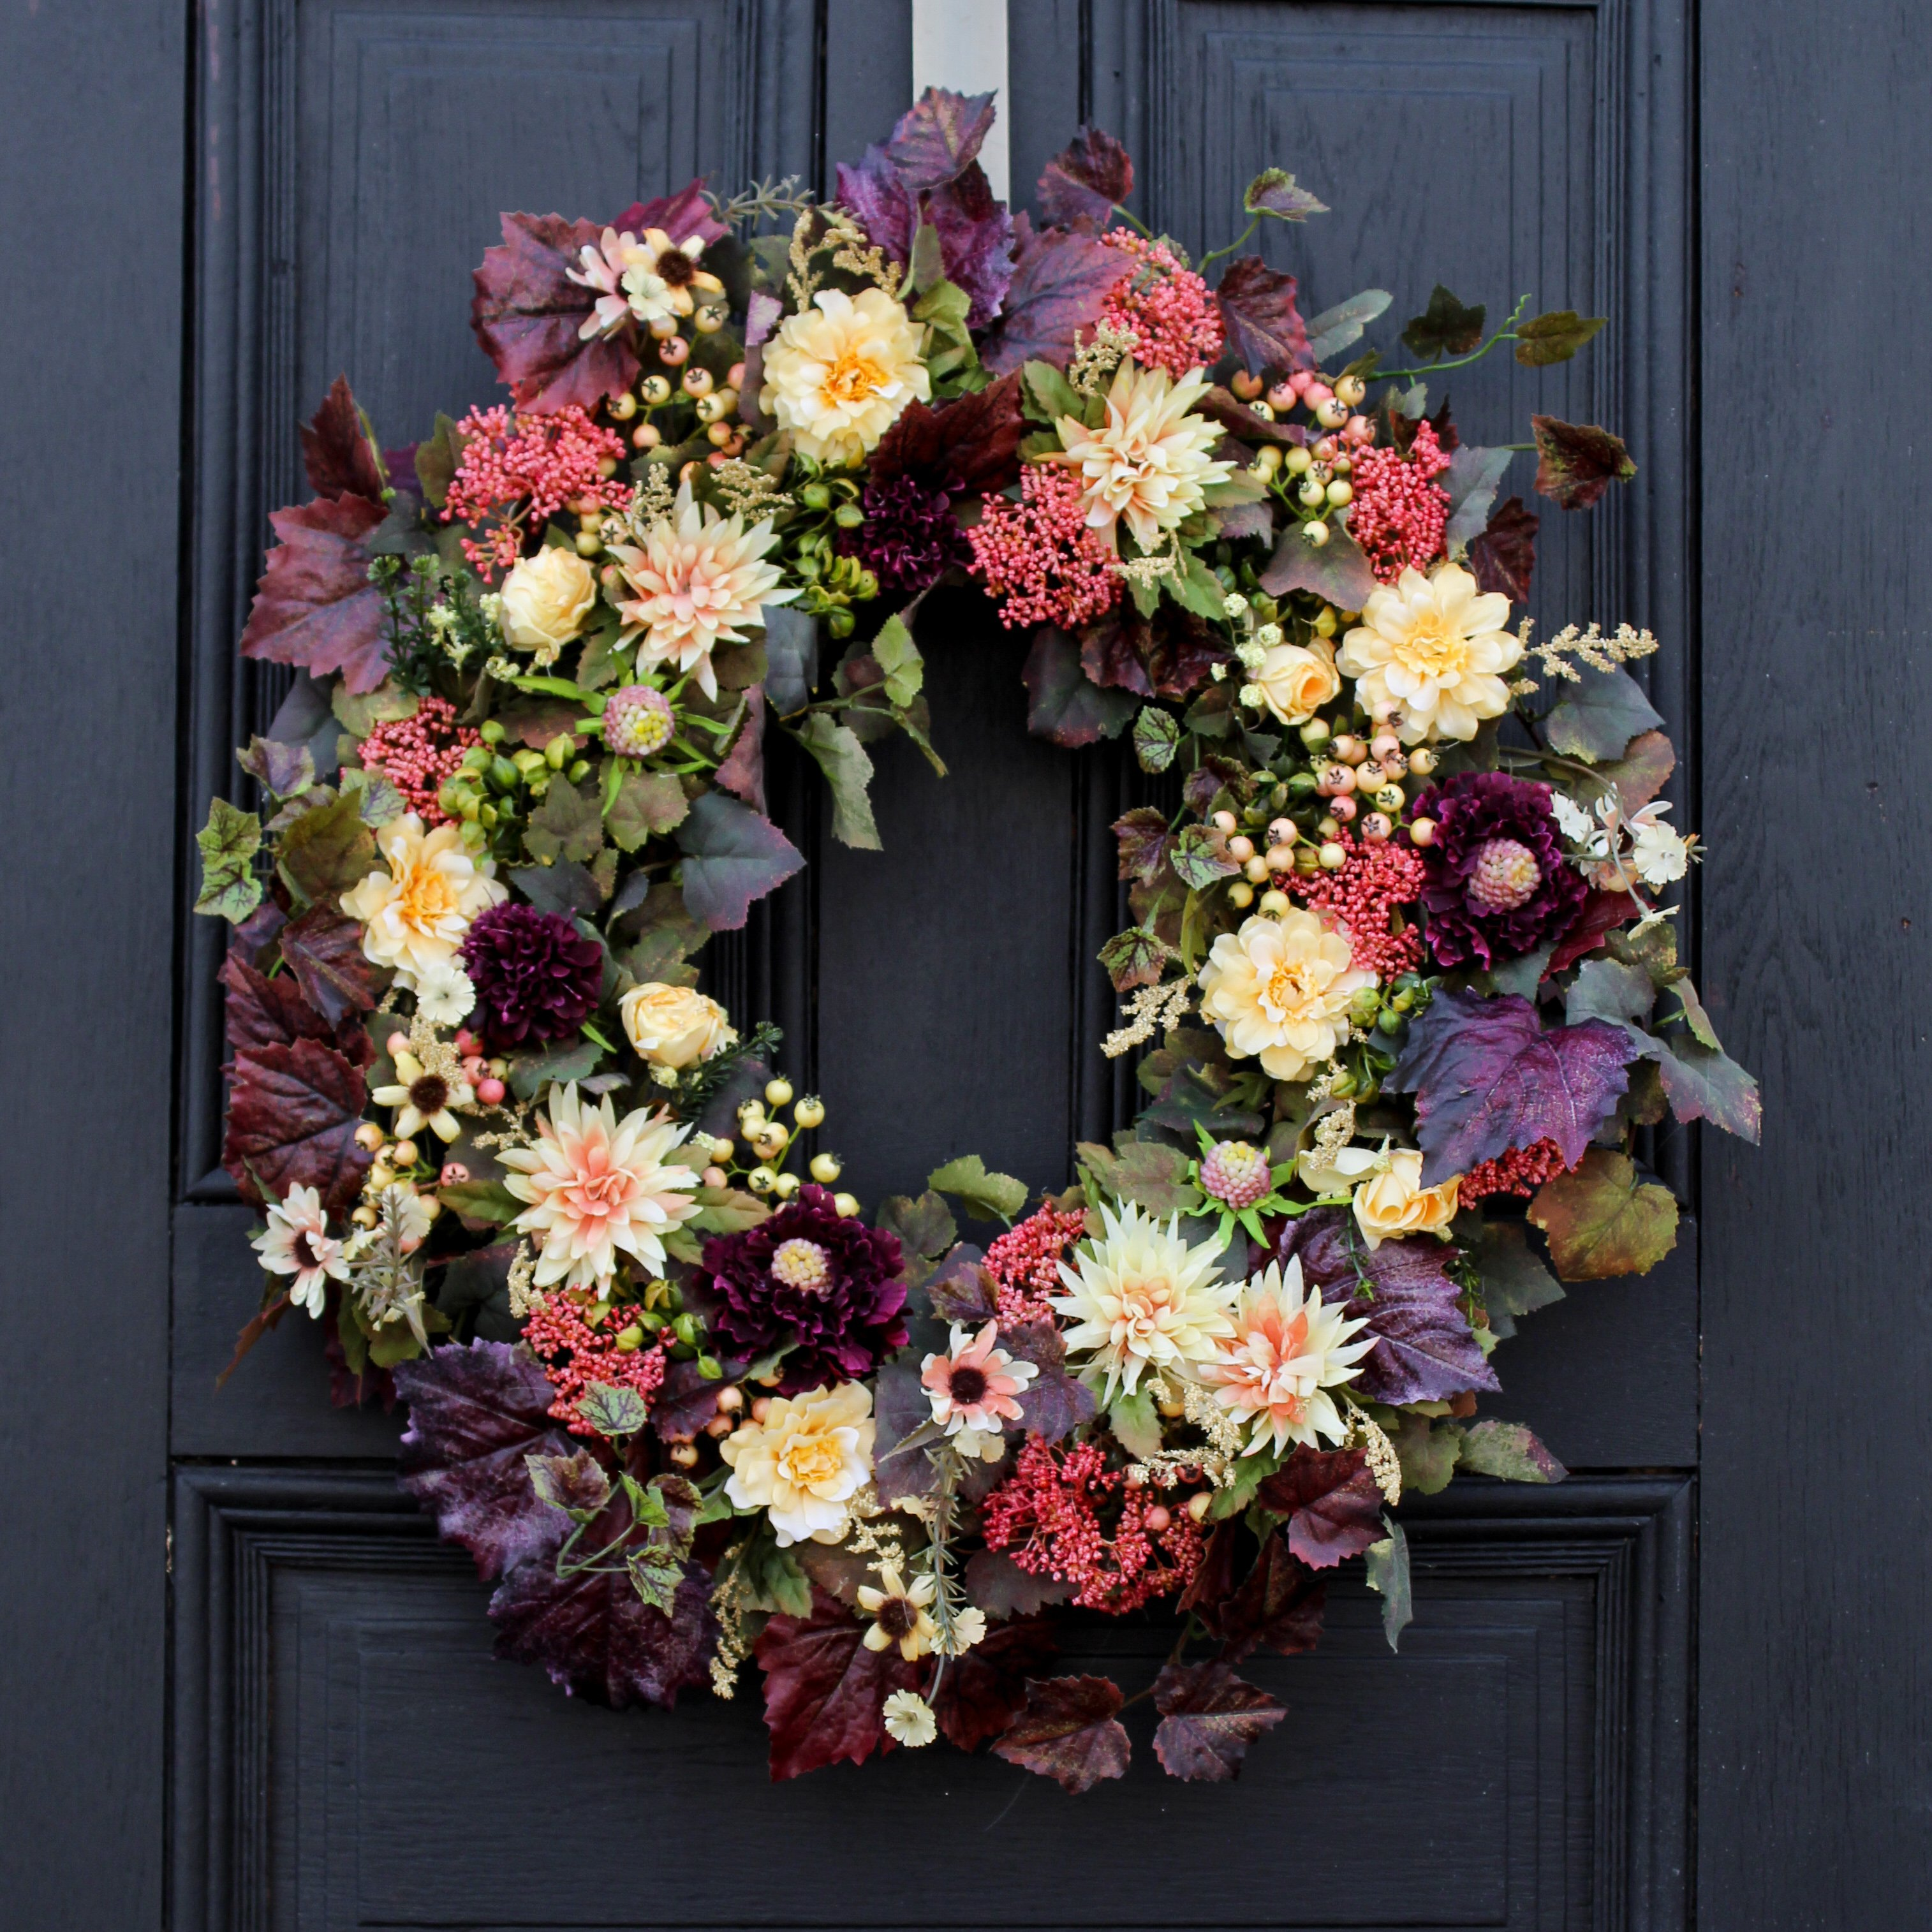 Merlot & Mauve Wildflowers and Mums Fall Front Door Wreath